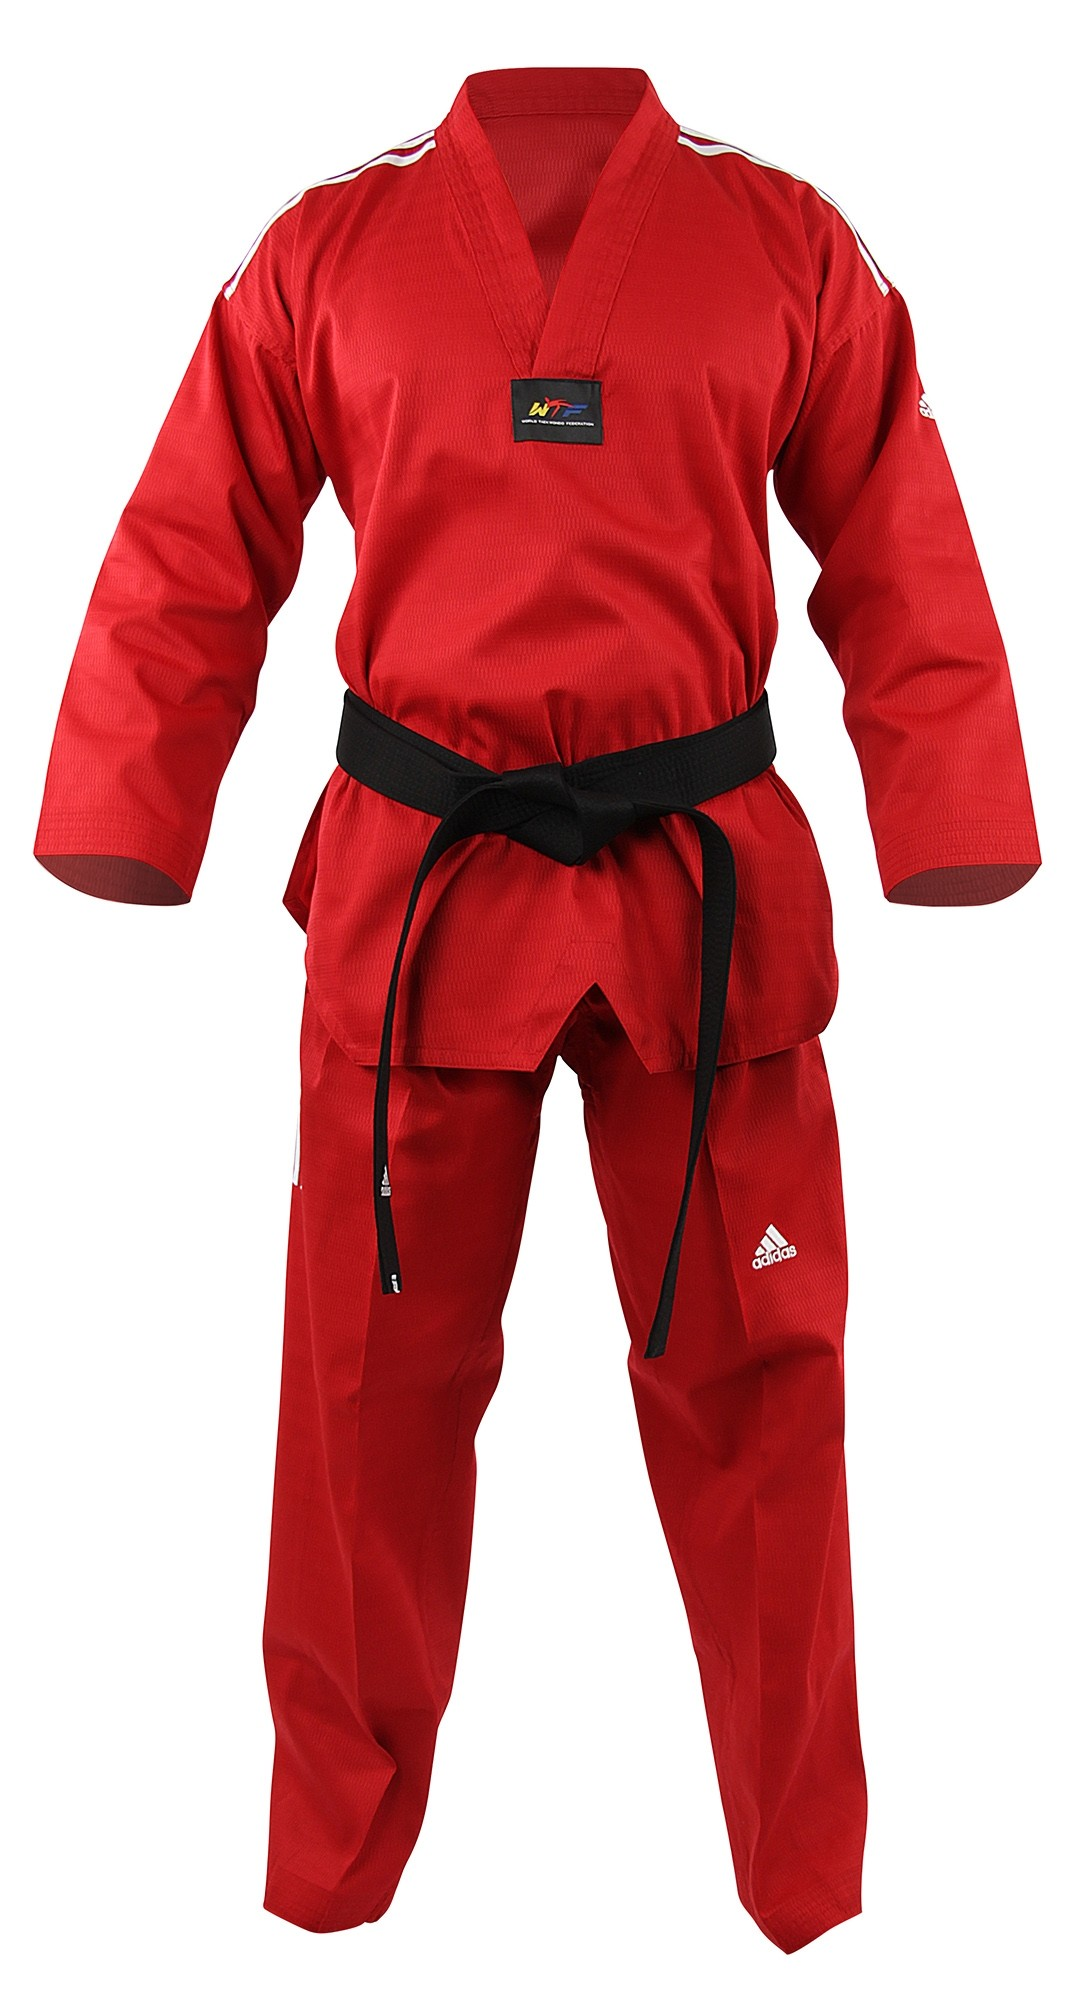 Dobok adi-Champ Color Rojo / Blanco